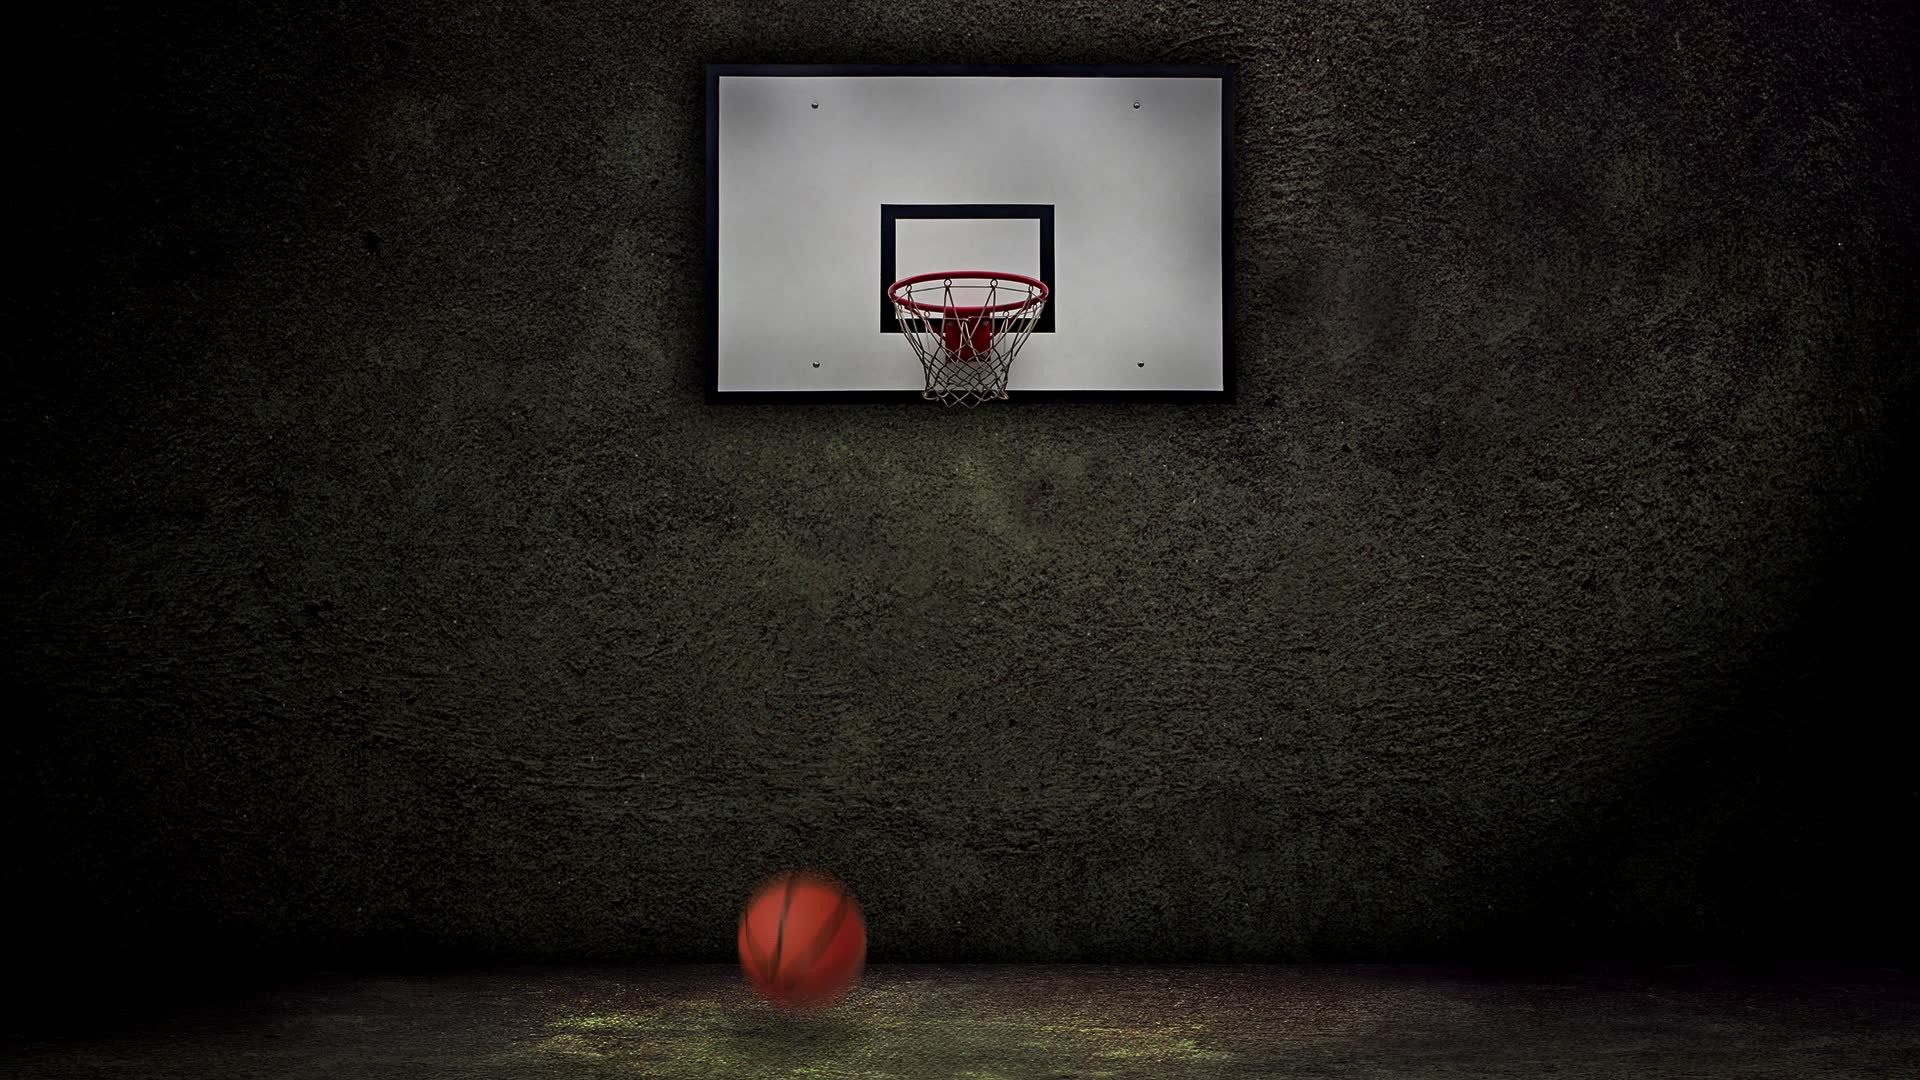 55 Basketball Wallpaper Iphone: Cool Basketball Wallpapers For IPhone (60+ Images